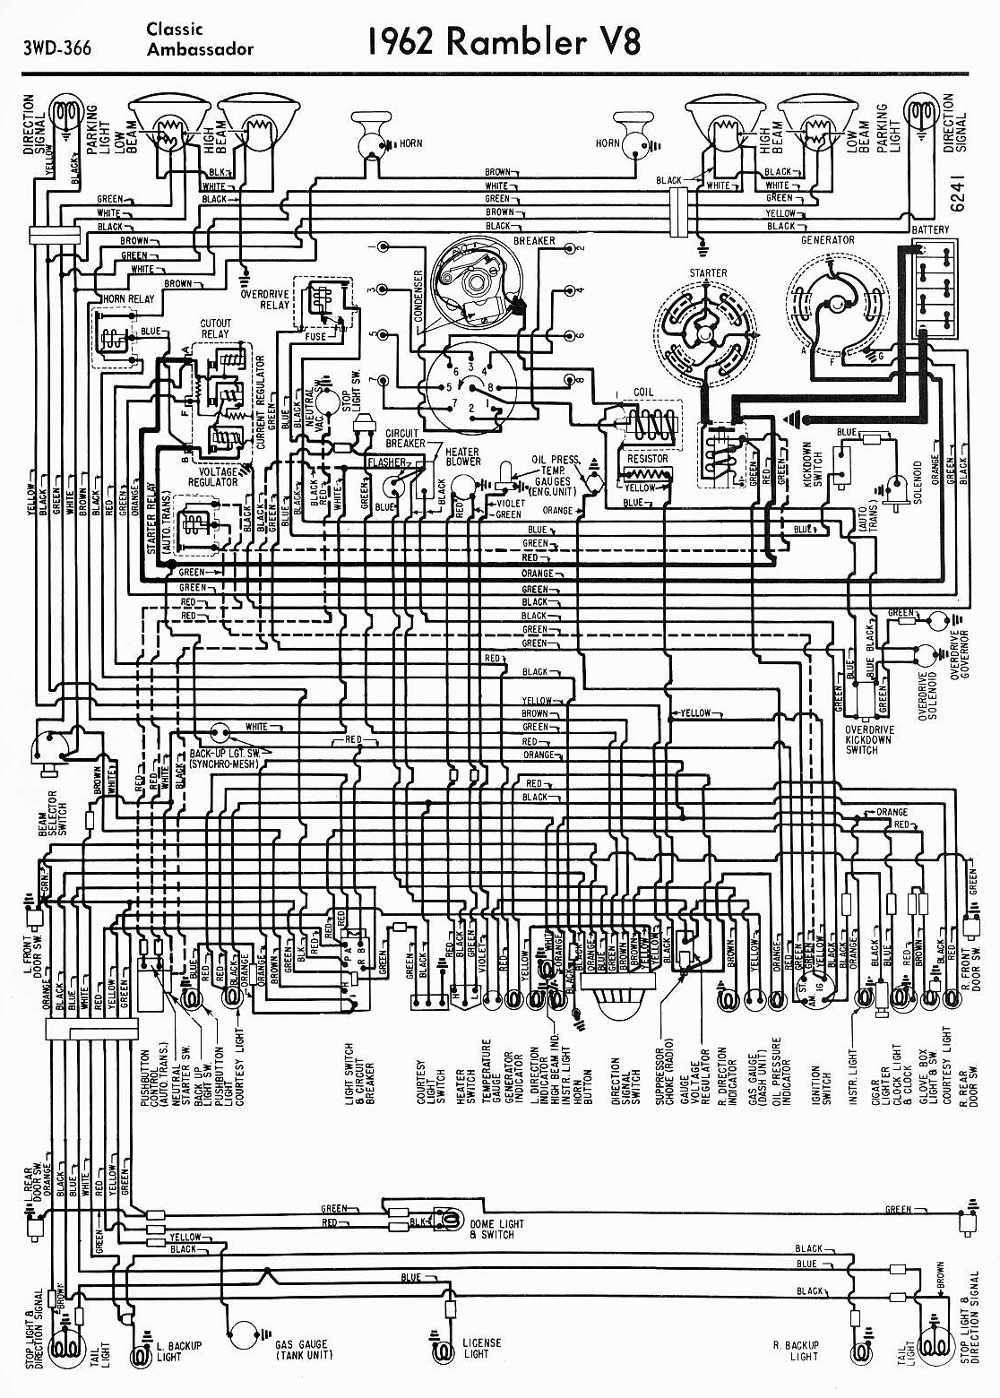 1969 Amc Amx Wiring Diagram Diagrams Datsun 1600 Online Schematic U2022 Rh Muscle Pharma Co 1968 Javelin Msd 6al Chevy V 8